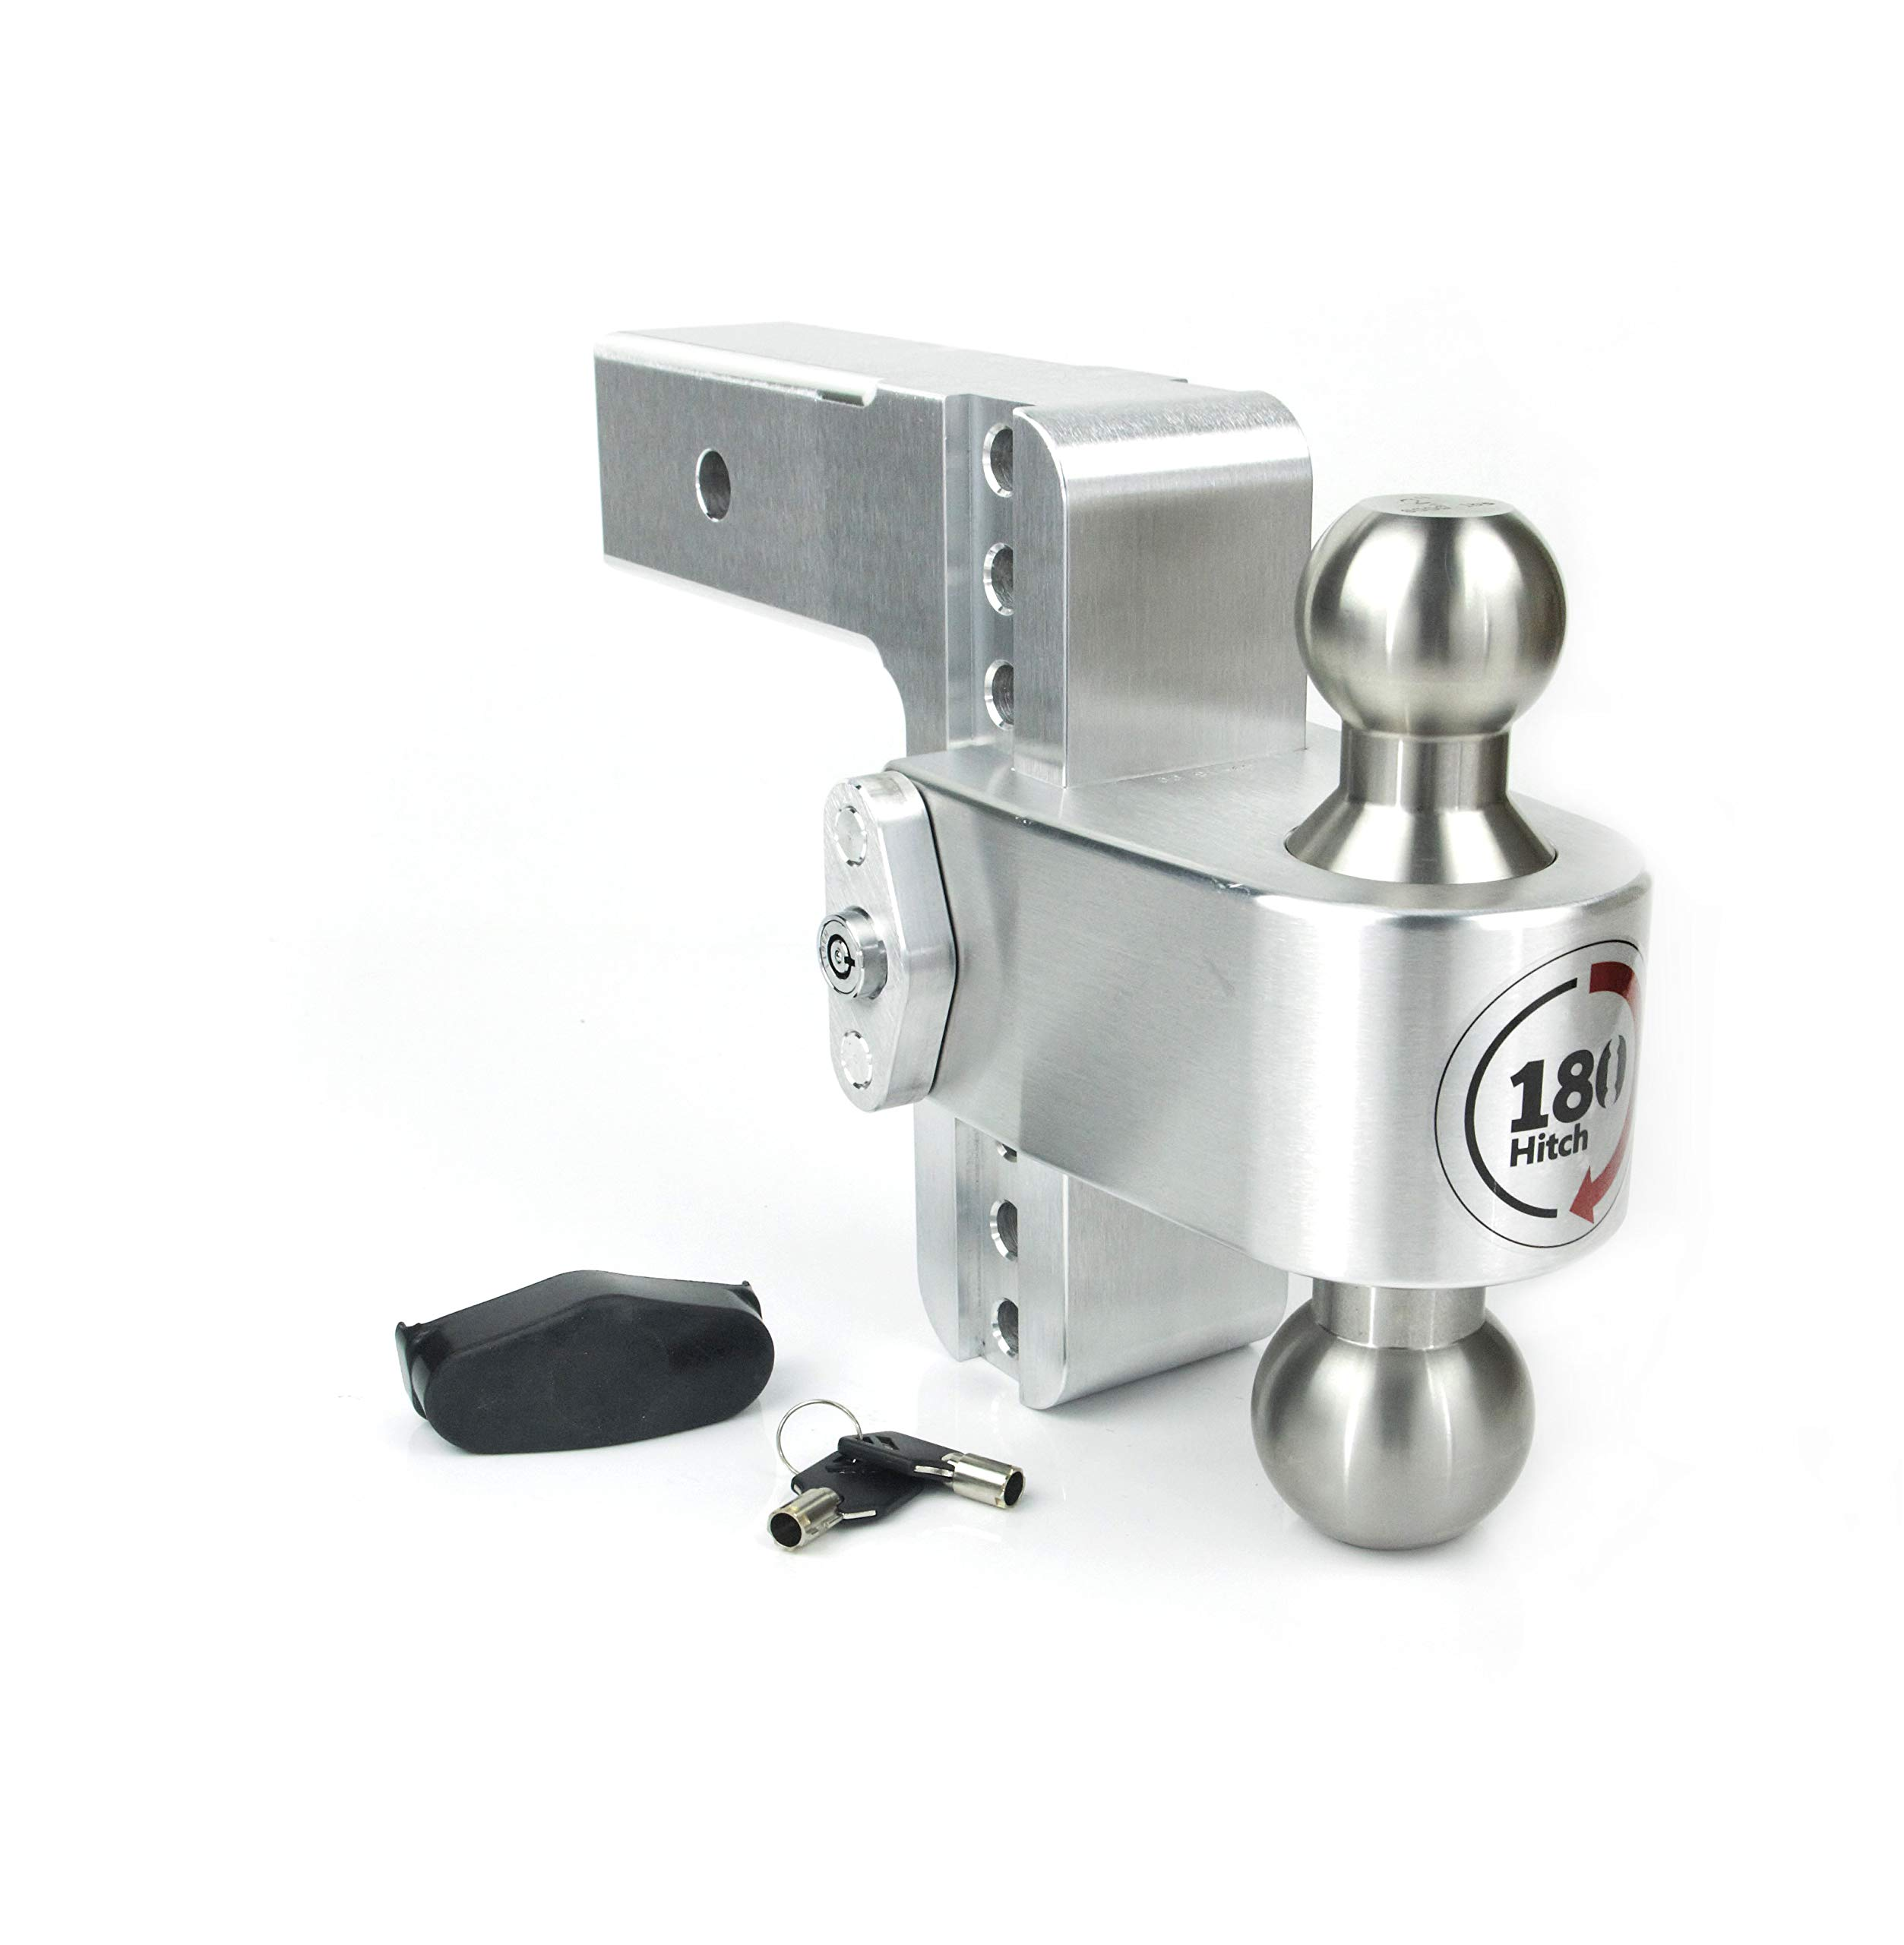 Weigh Safe LTB6-2.5, 6'' Drop 180 Hitch w/ 2.5'' Shank/Shaft, Adjustable Aluminum Trailer Hitch & Ball Mount, Stainless Steel Combo Ball (2'' & 2-5/16'') and a Double-pin Key Lock